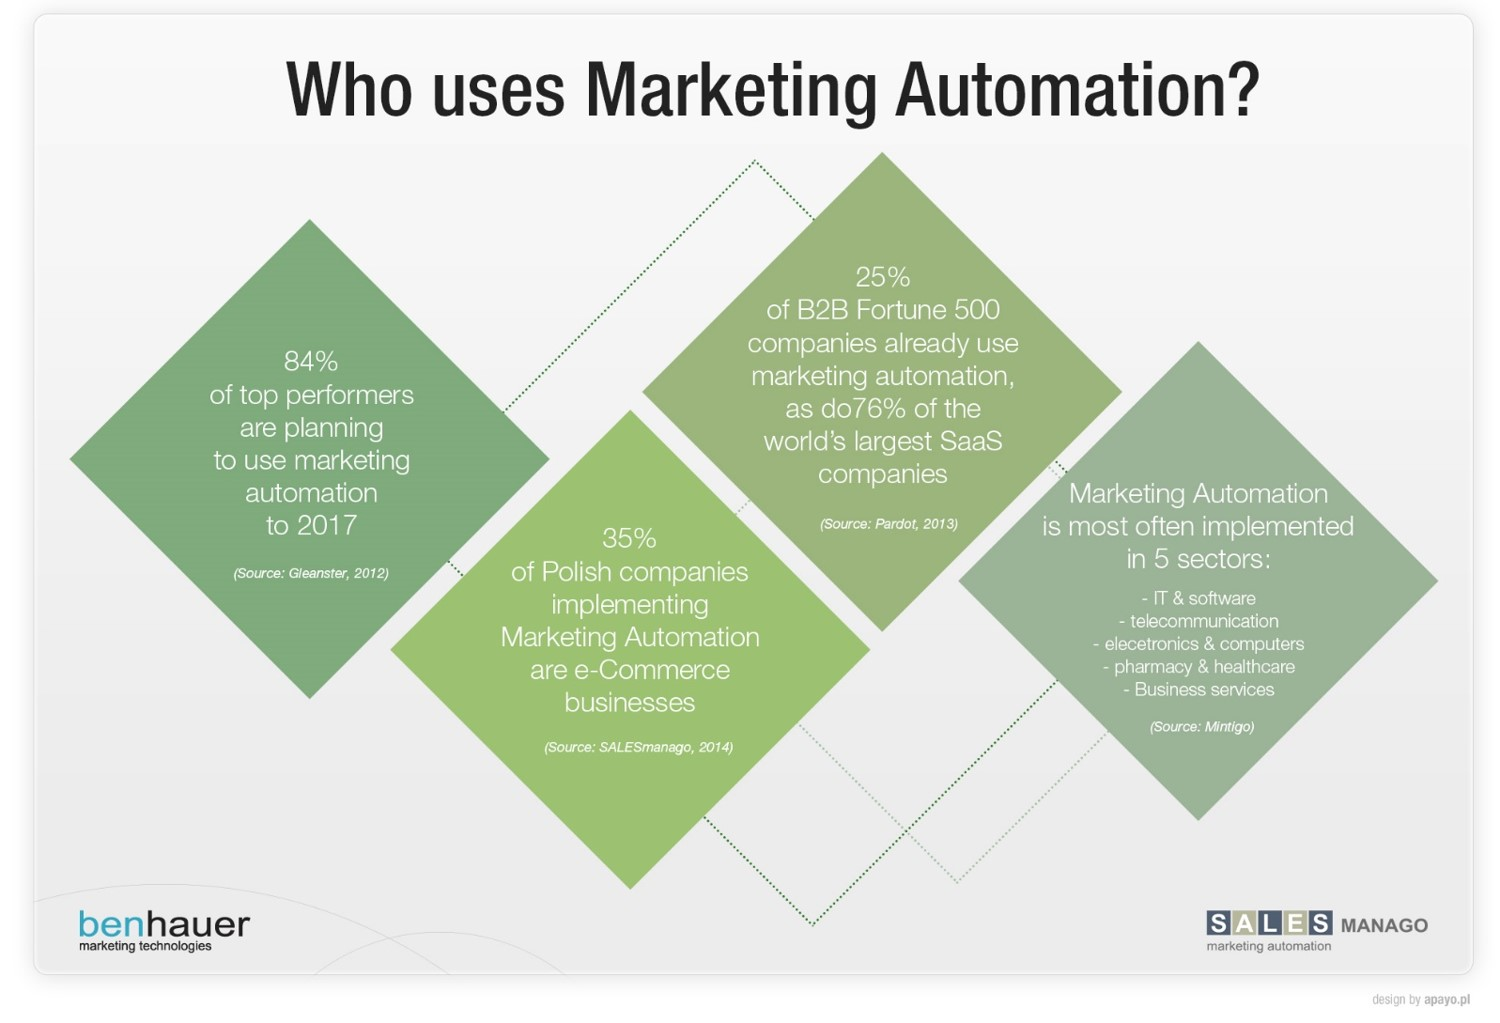 Who uses Marketing Automation